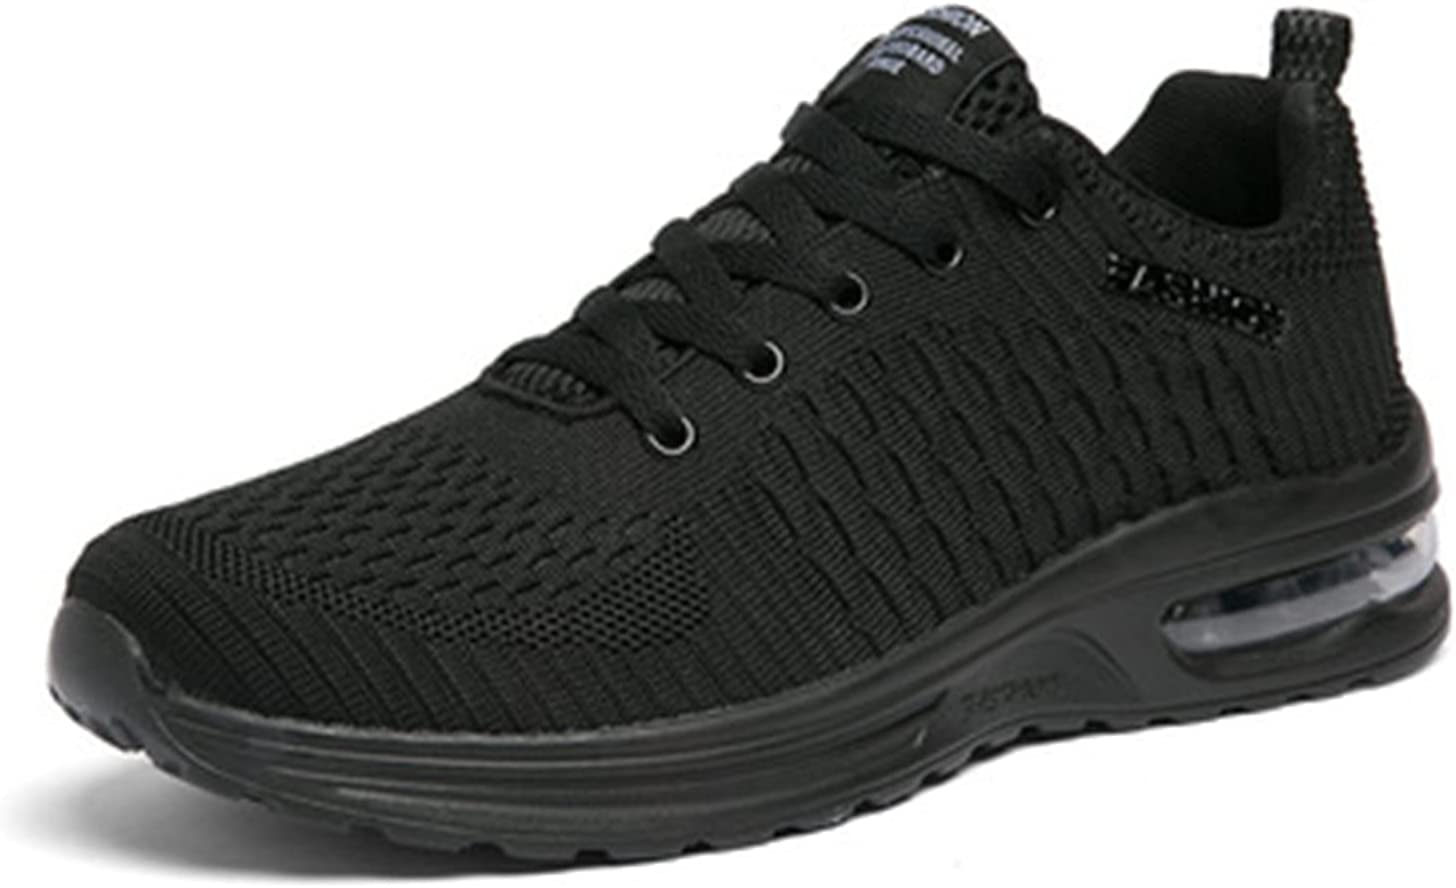 Men Women Sports Running Shoes Tulsa Mall Hiking Outdoor Trainers Breathabl Spasm price